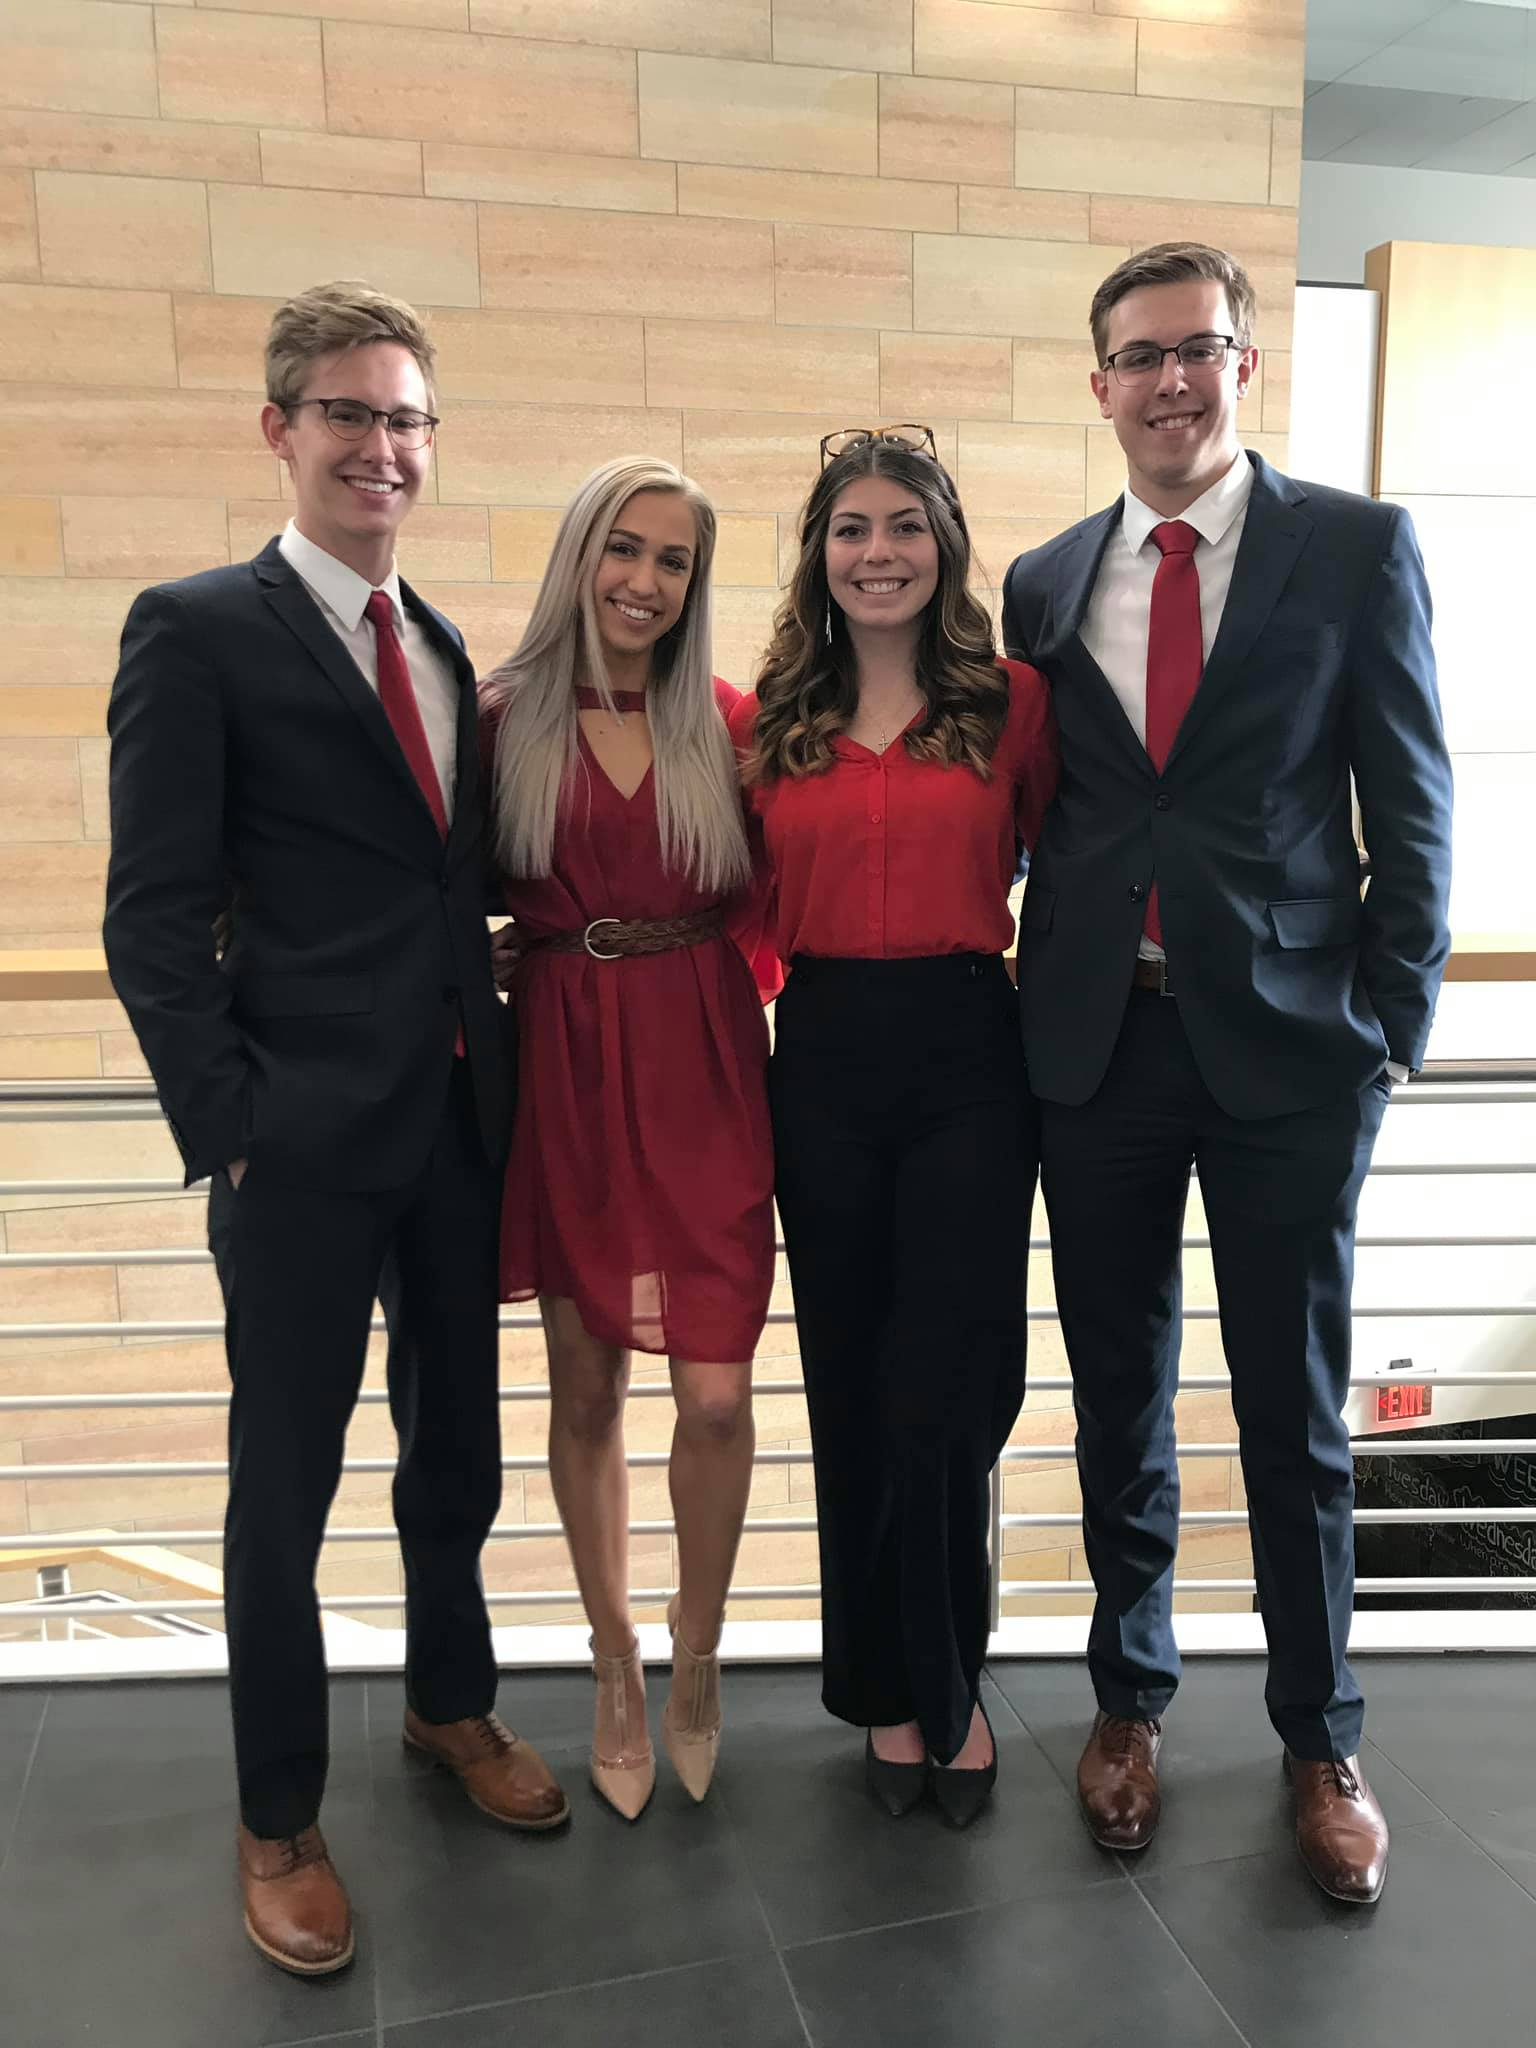 Our State Board - The Minnesota College Republicans Board is made up of young conservative leaders across the state. Click here to learn more about these amazing freedom fighters and the great work they do for MNCRs.